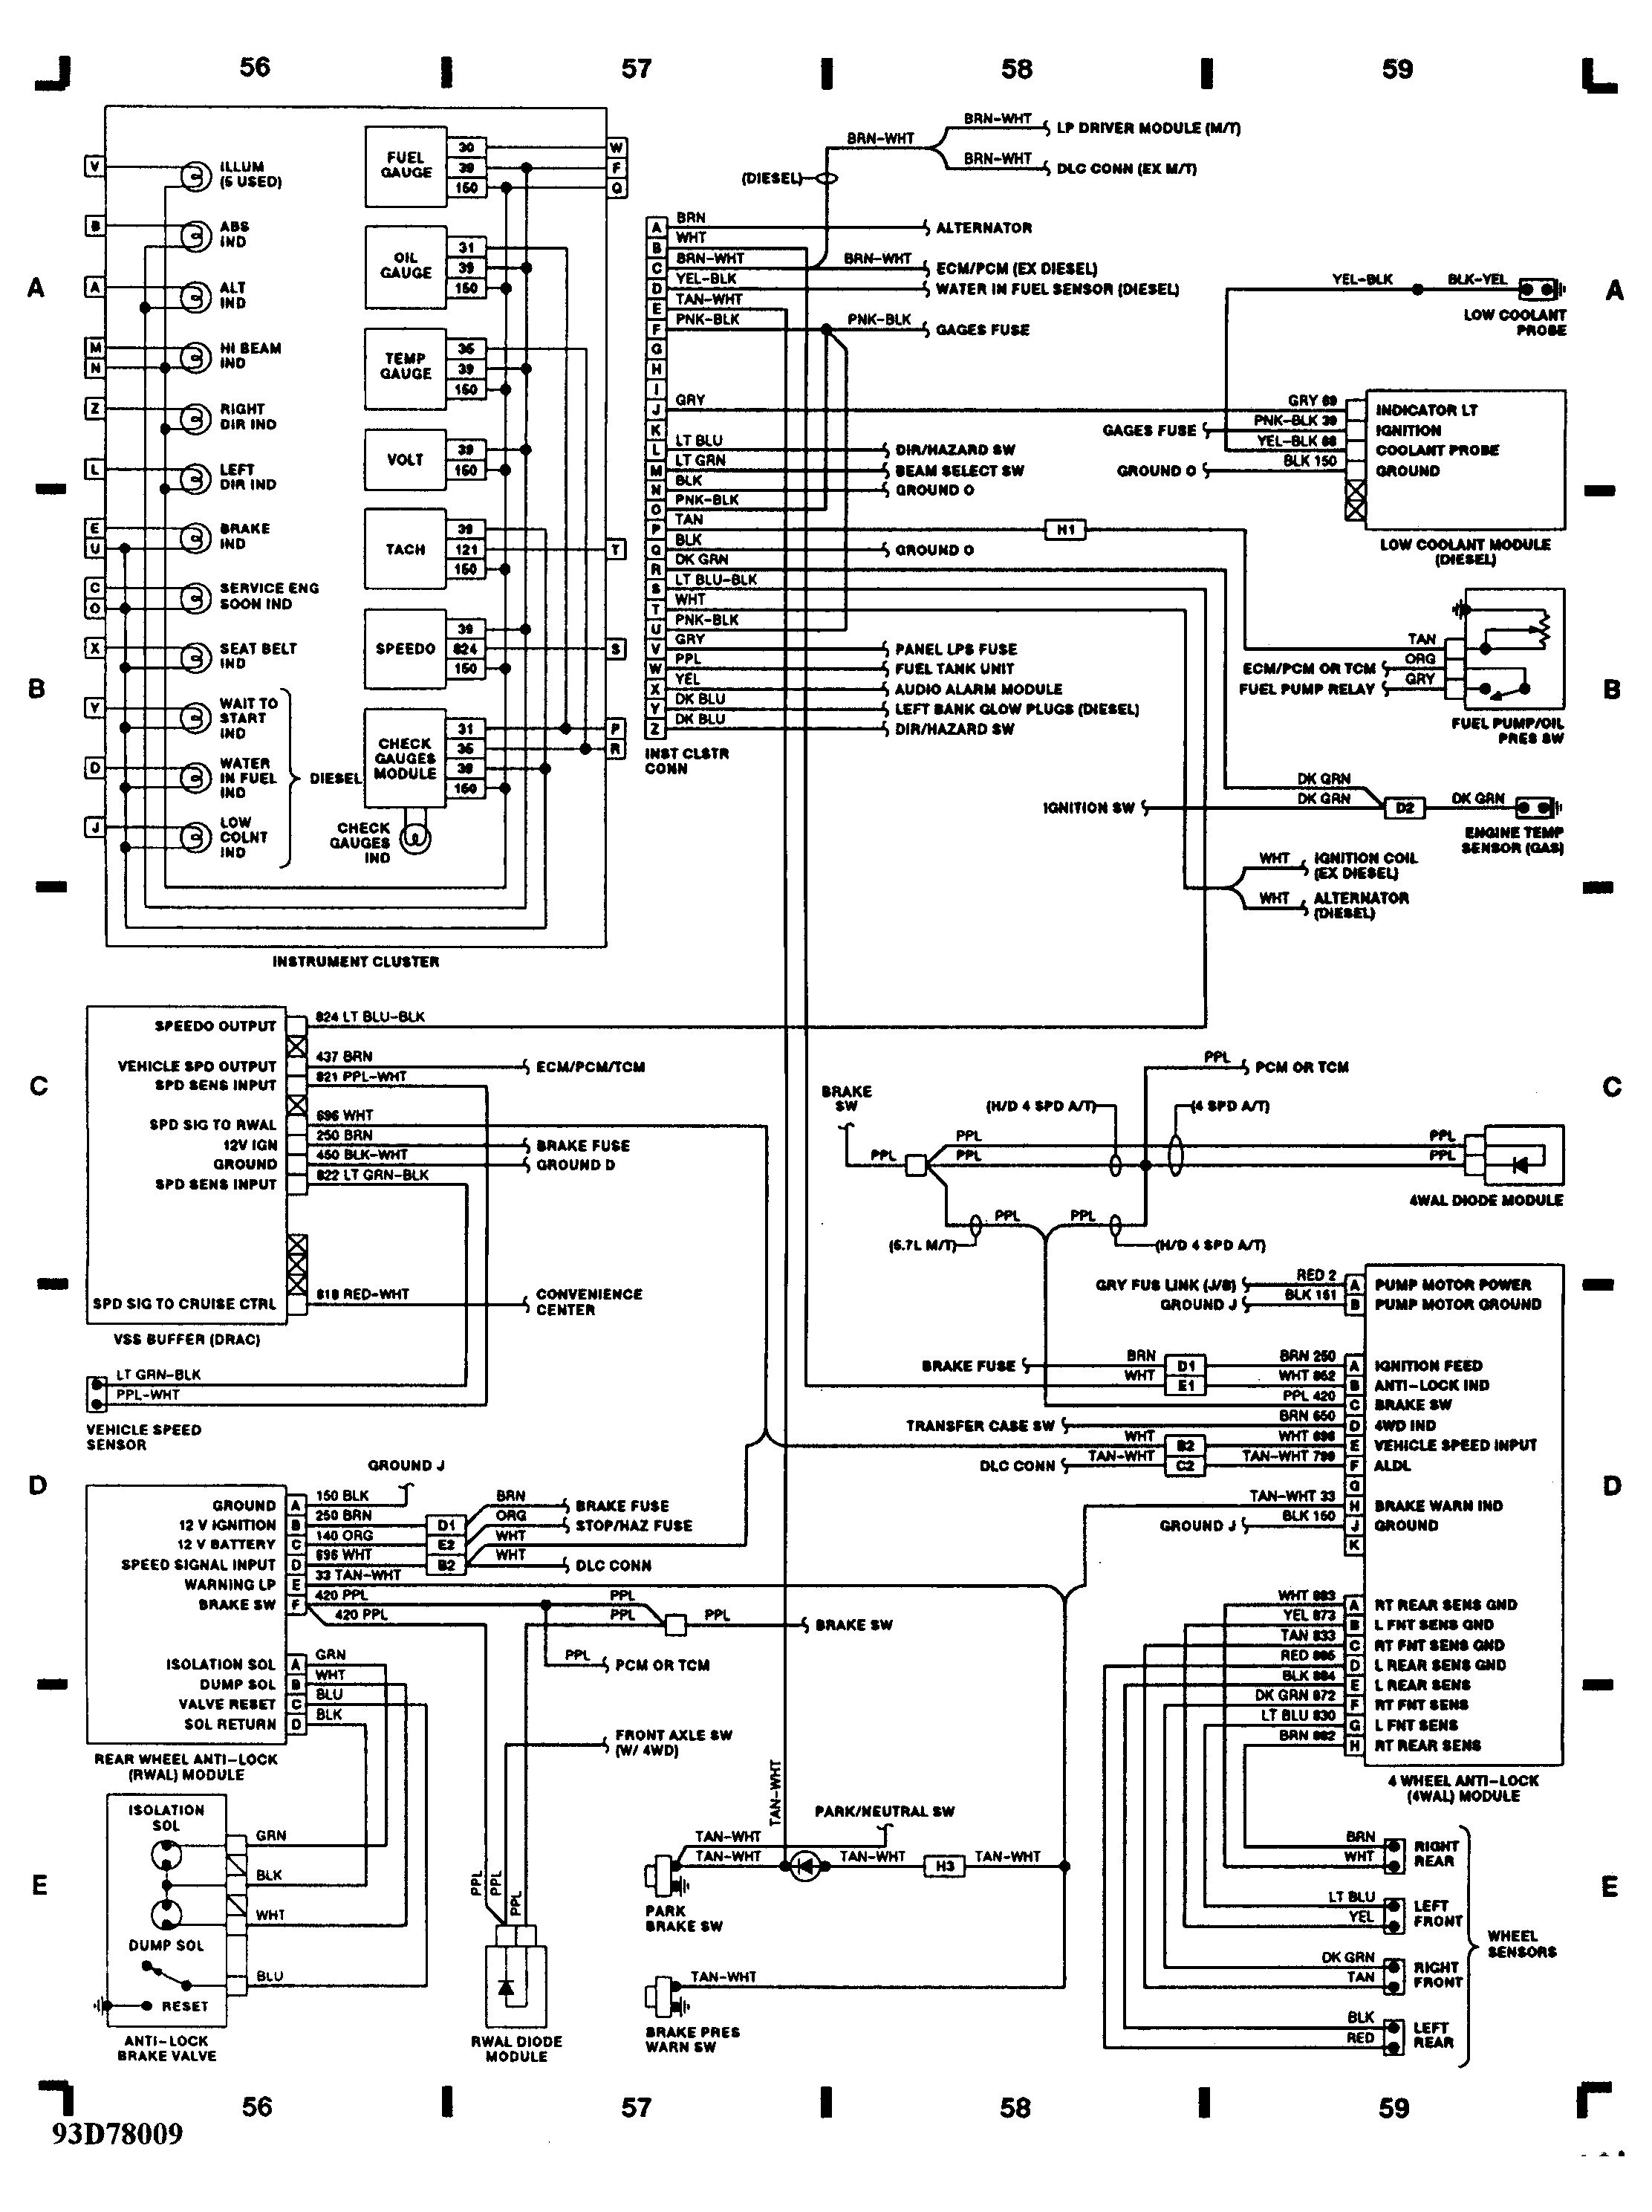 7 3 Diesel Engine Diagram Wiring Diagram Yamaha 125zr Save 5 7 Vortec Wiring  Harness Diagram